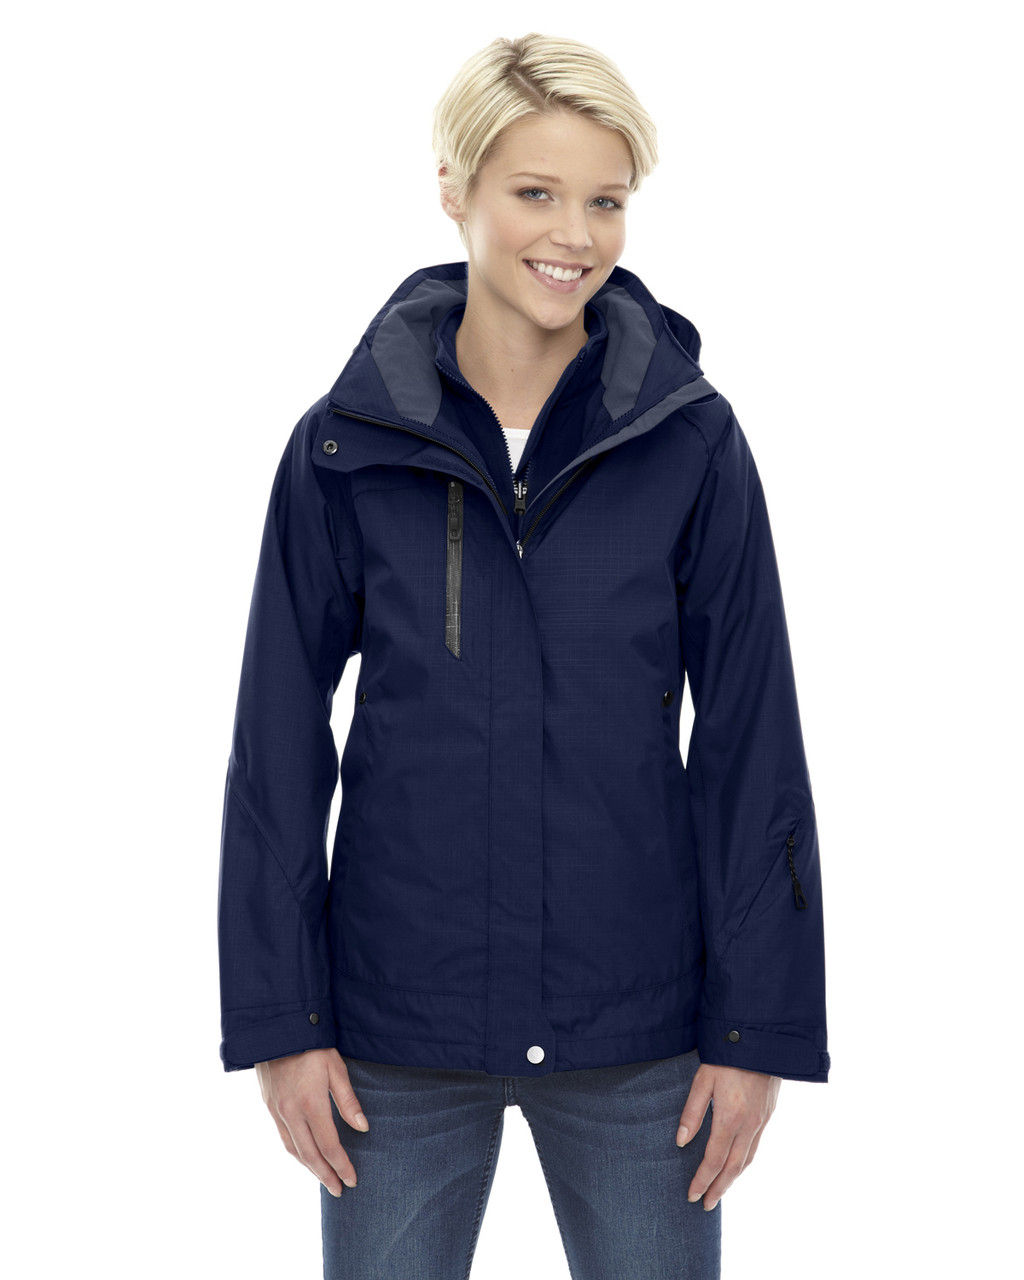 Classic Navy - 78178 North End Caprice 3-in-1 Jacket with Soft Shell Liner | Blankclothing.ca